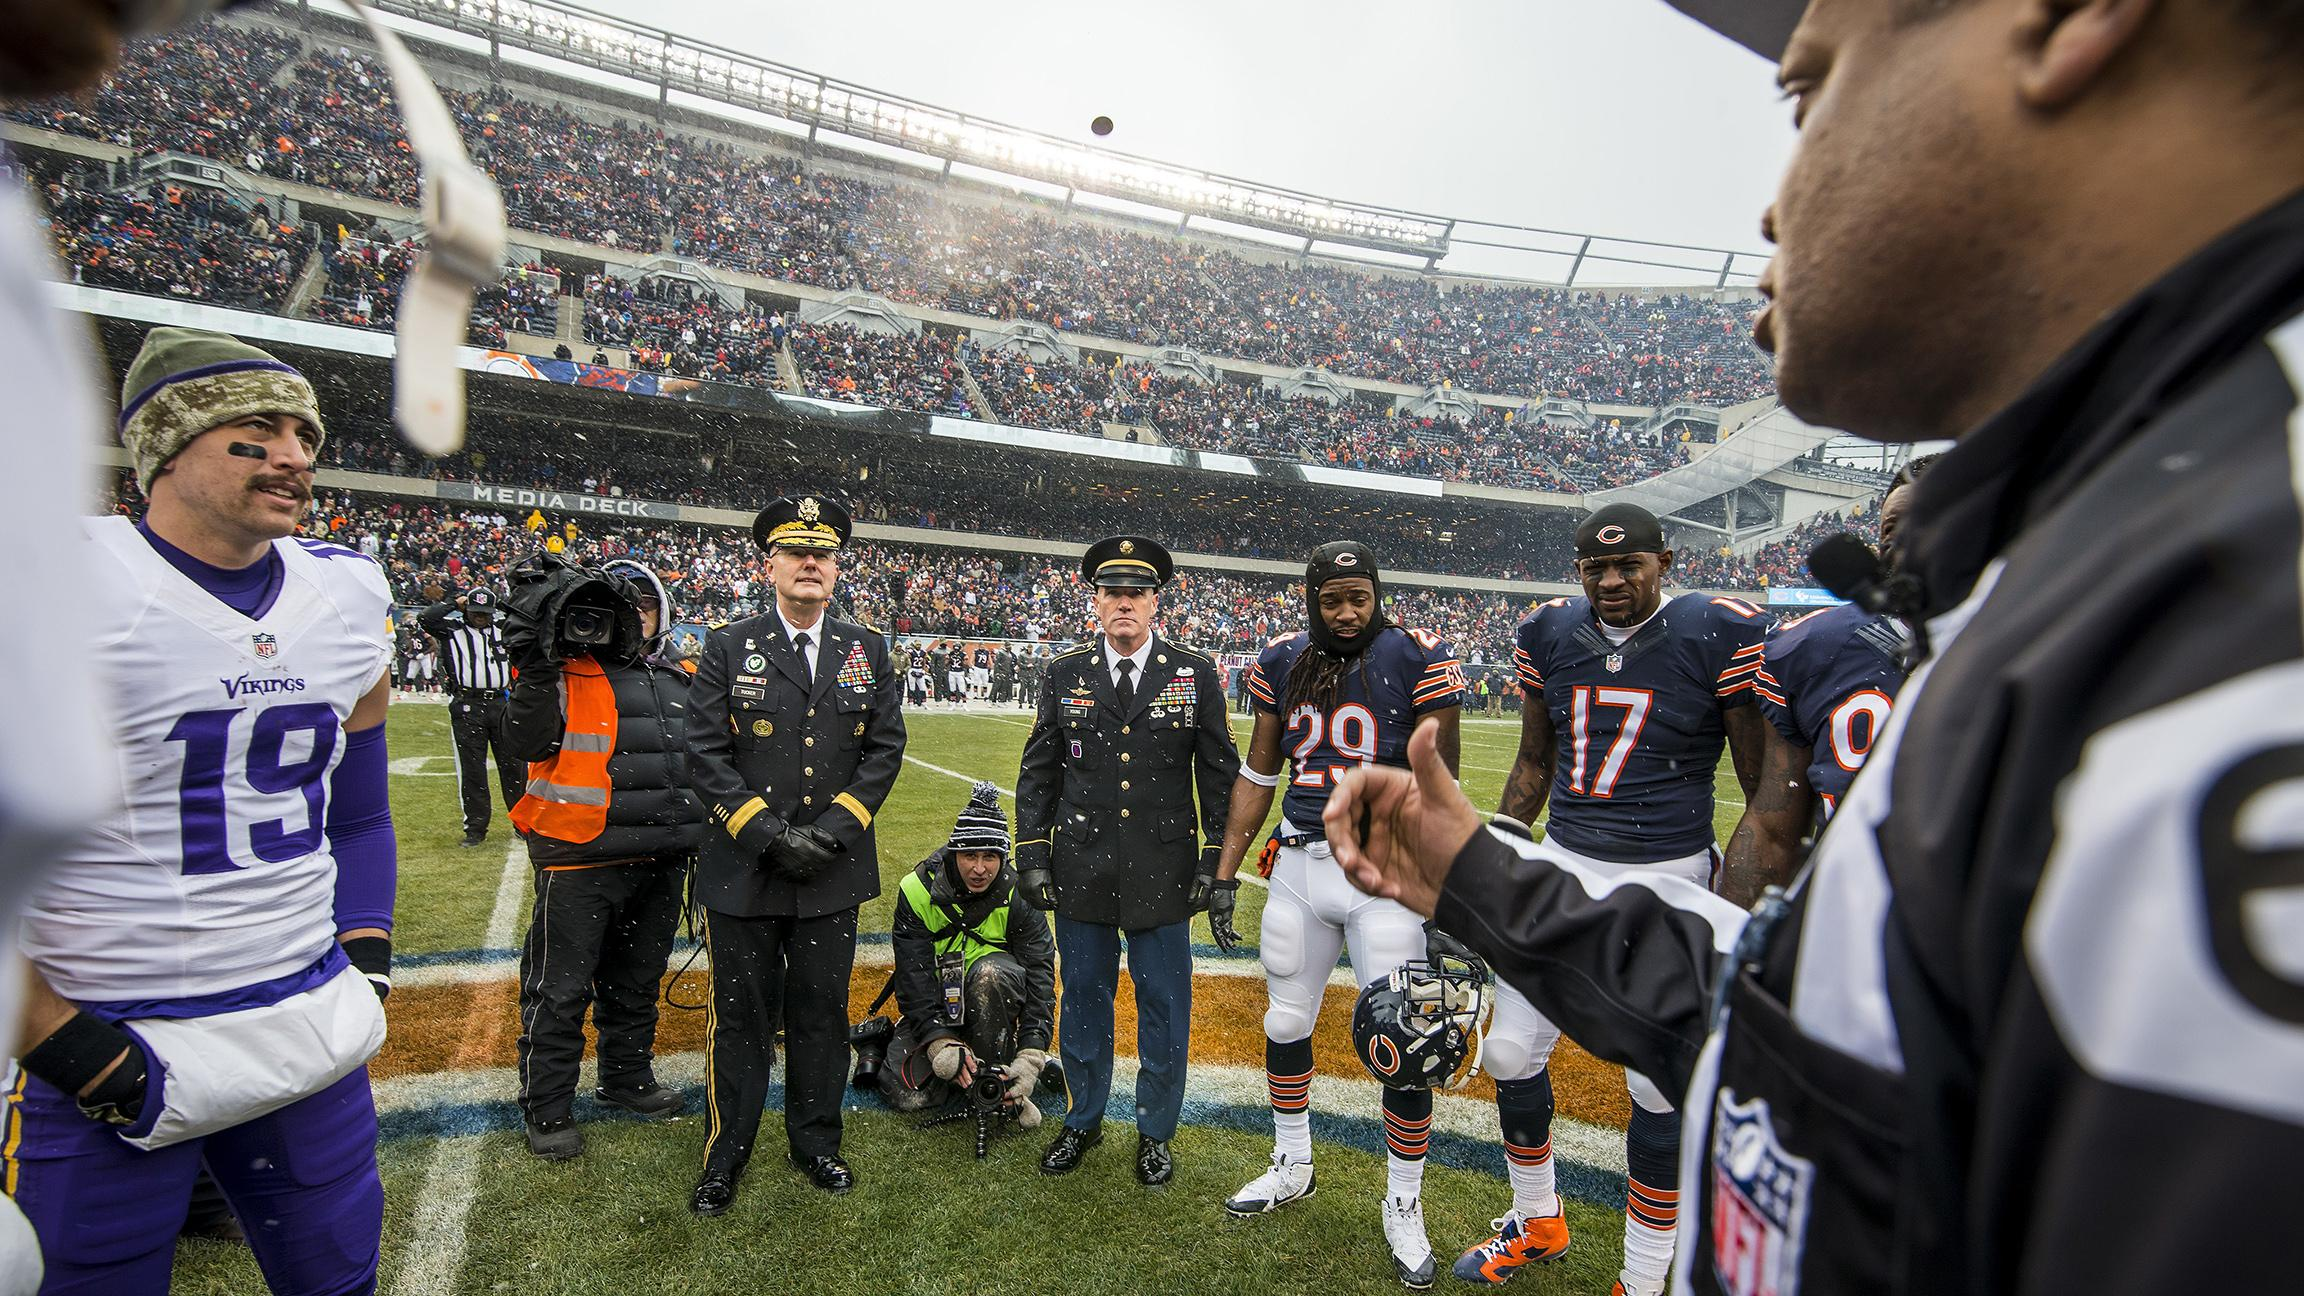 U.S. Army officers oversee a coin toss on Nov. 16, 2014 between the Chicago Bears and Minnesota Vikings at Soldier Field. (U.S. Army photo by Sgt. 1st Class Michel Sauret)